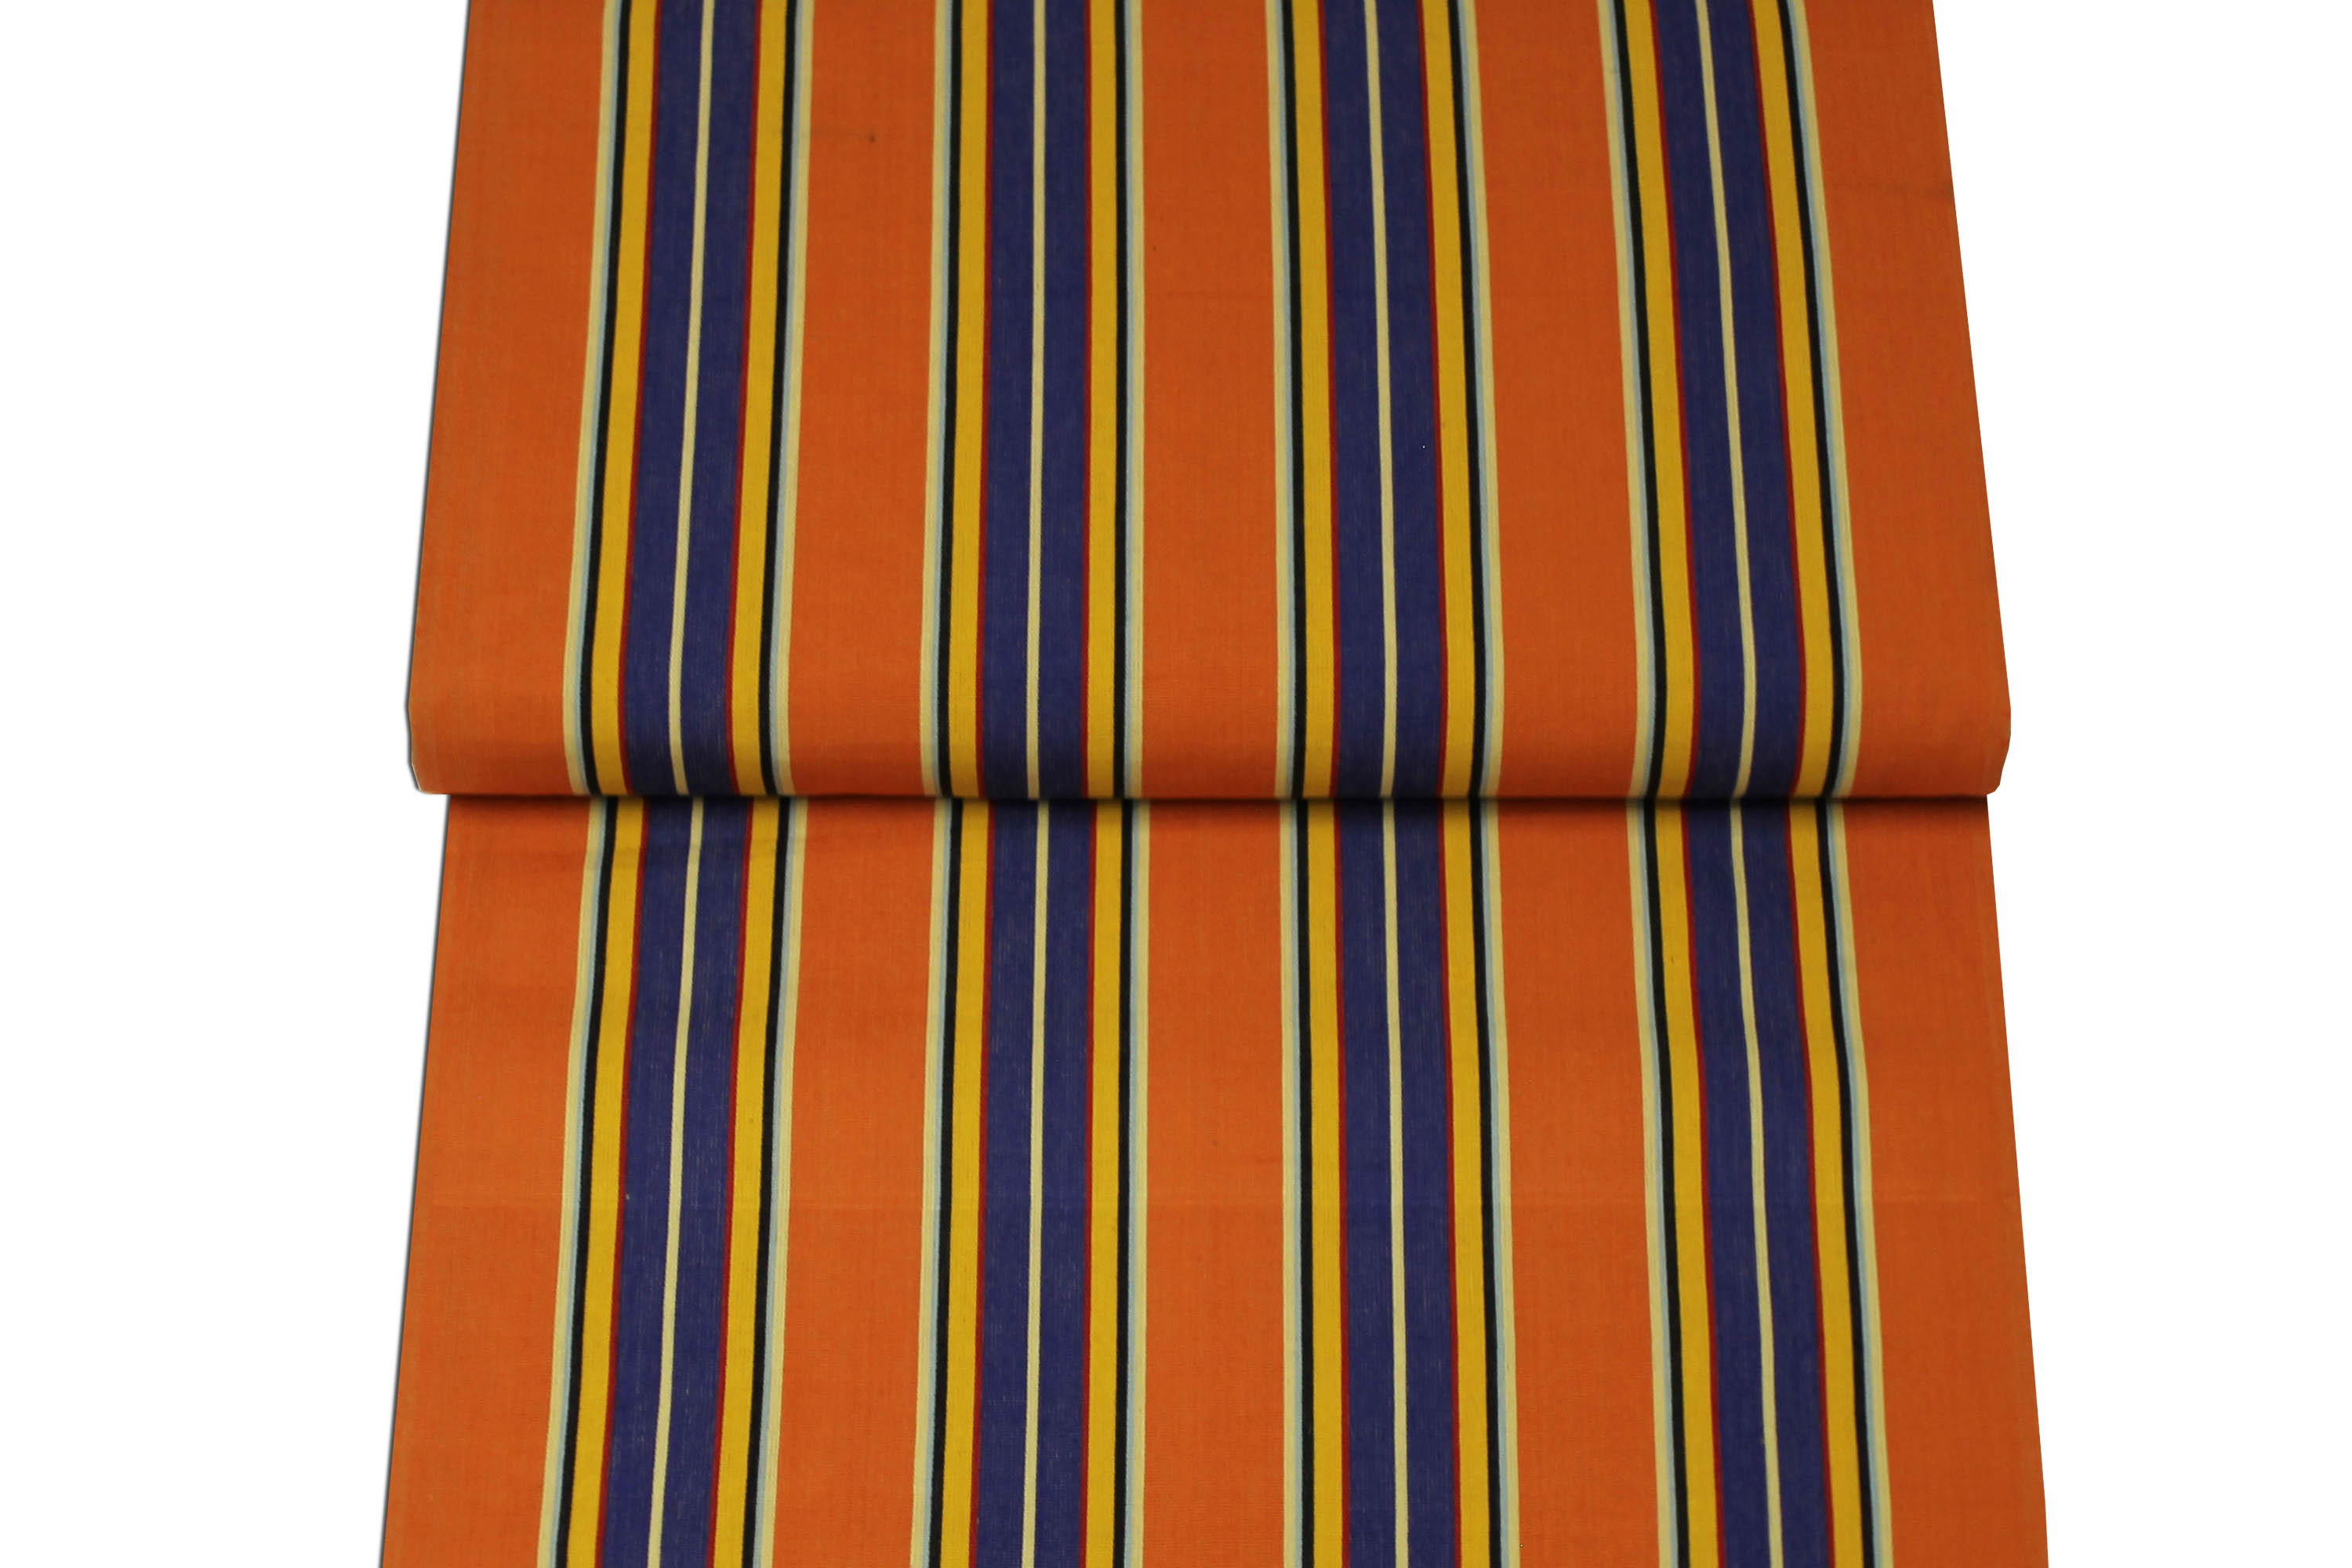 Rust Deckchair Canvas Vintage Archive Striped Fabrics | Vintage Deckchair Fabric Jazz Stripes